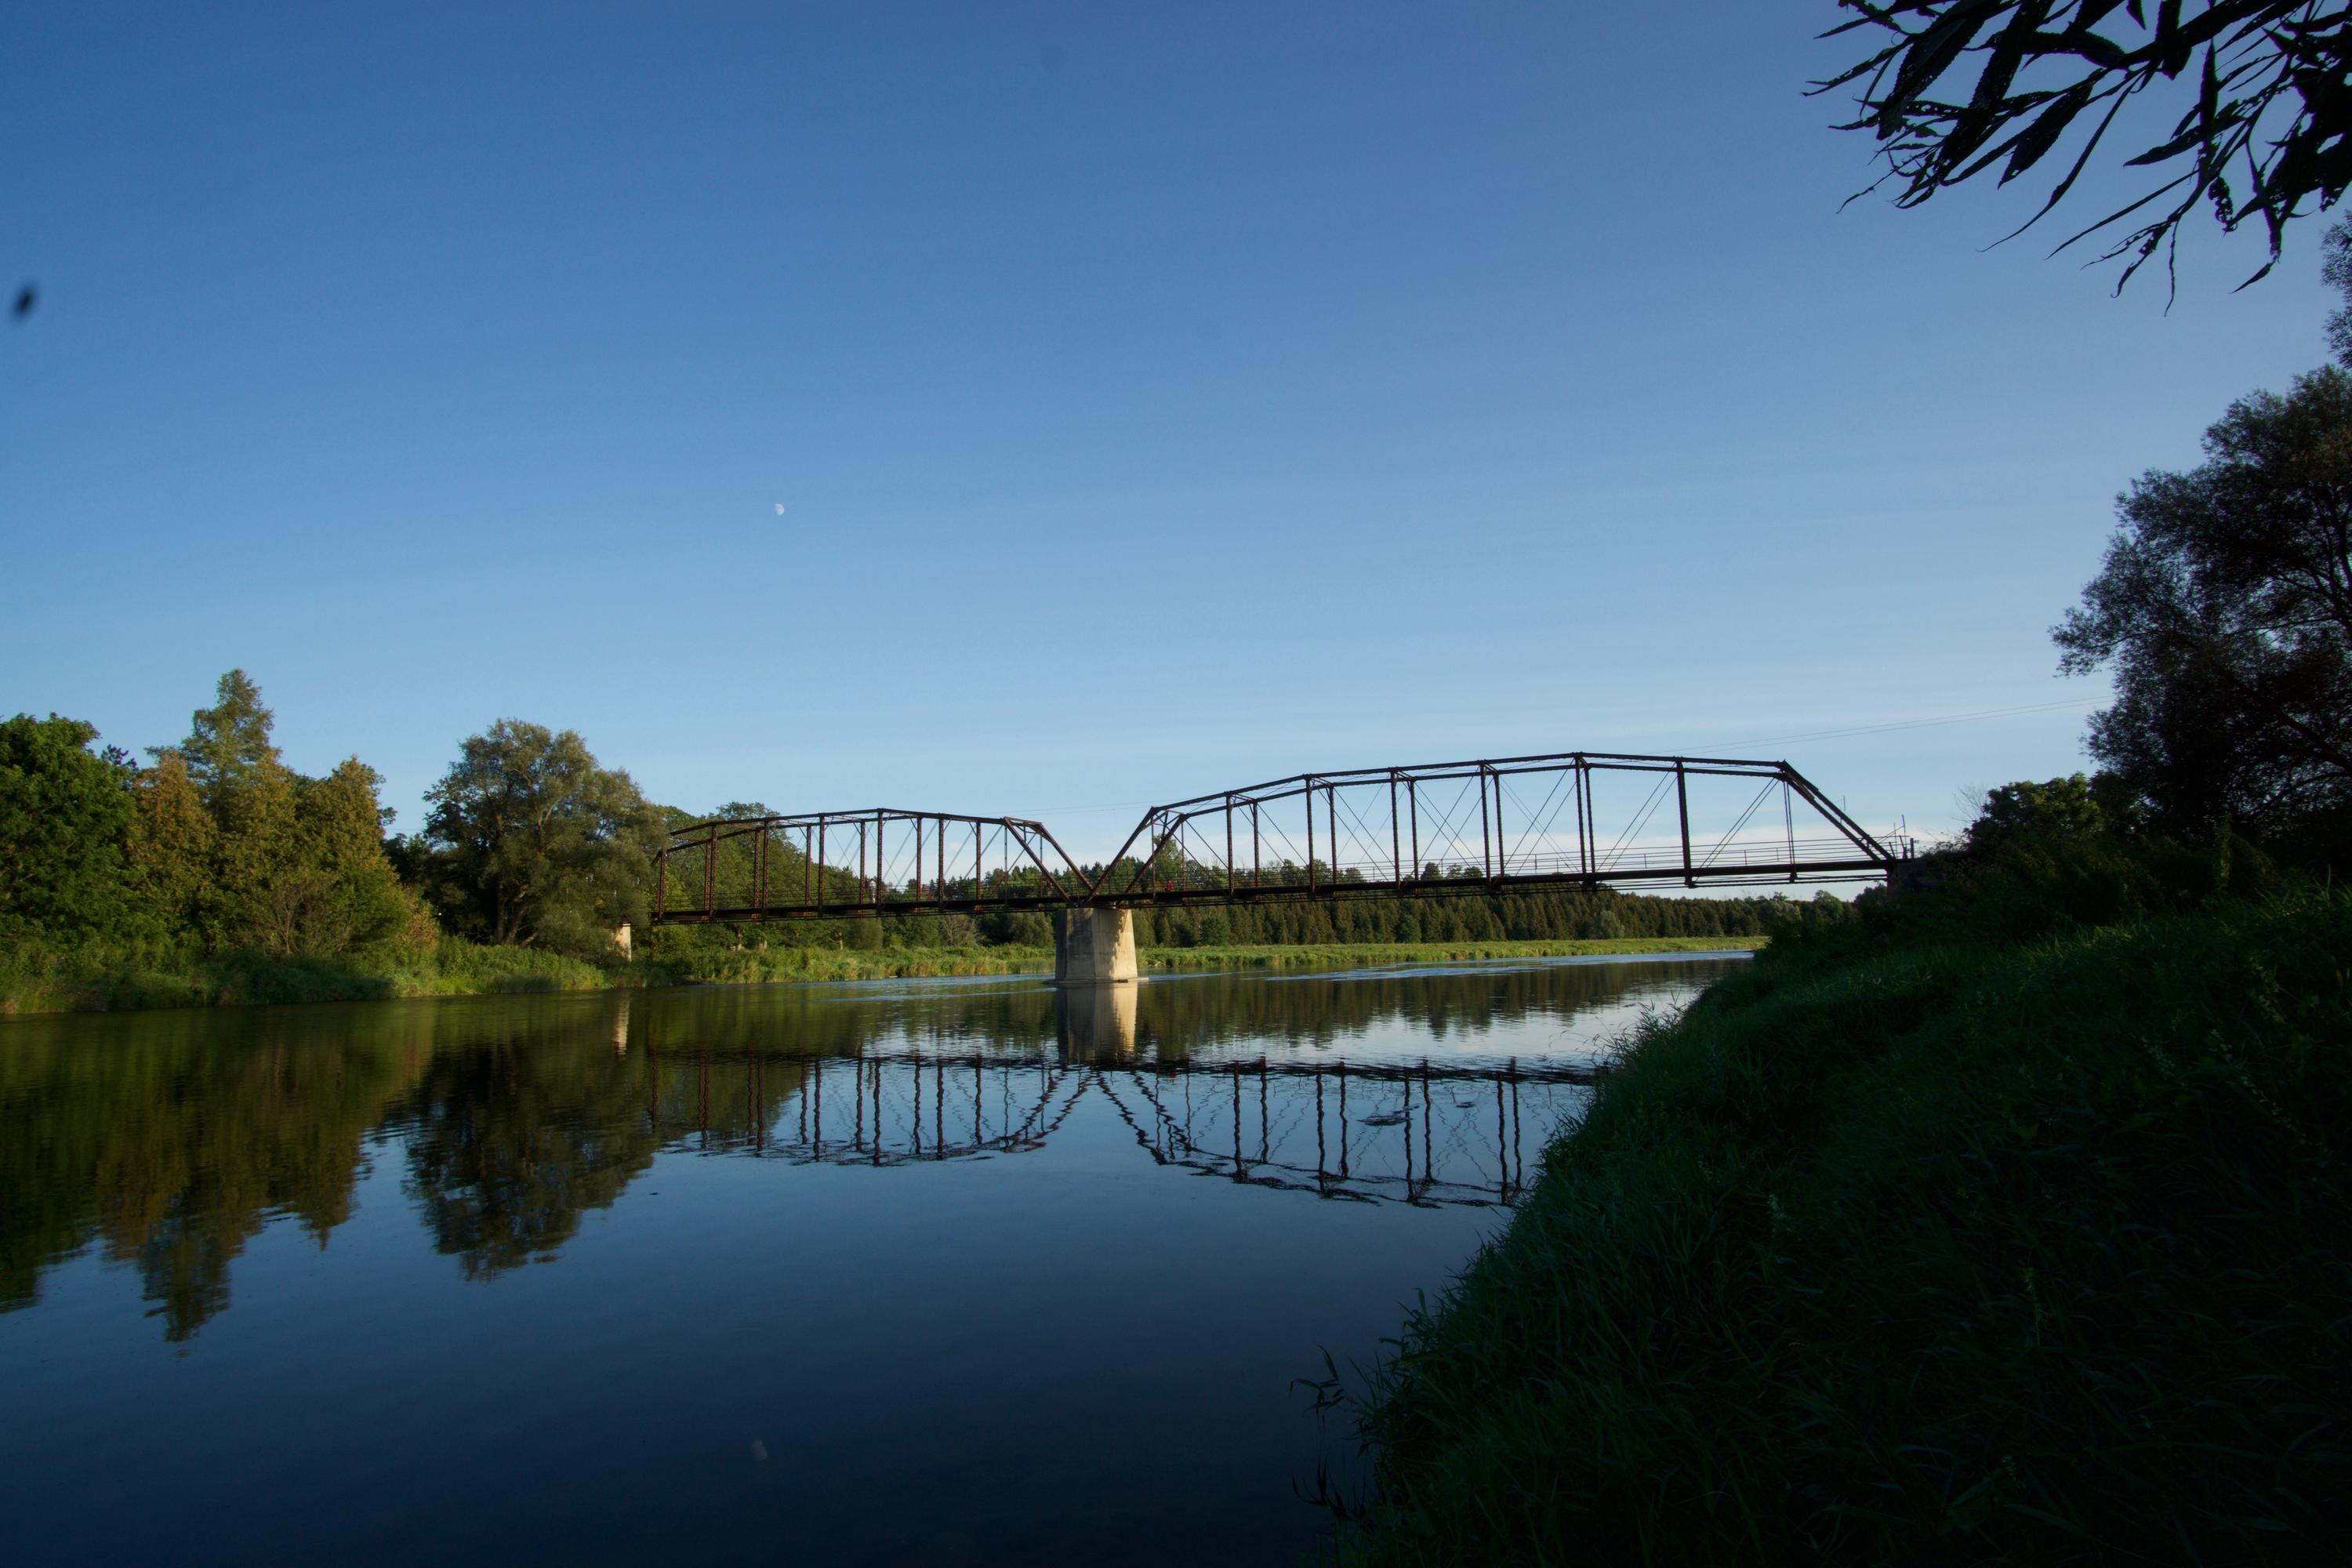 Picturesque bridge over the Grand River in Waterloo Region